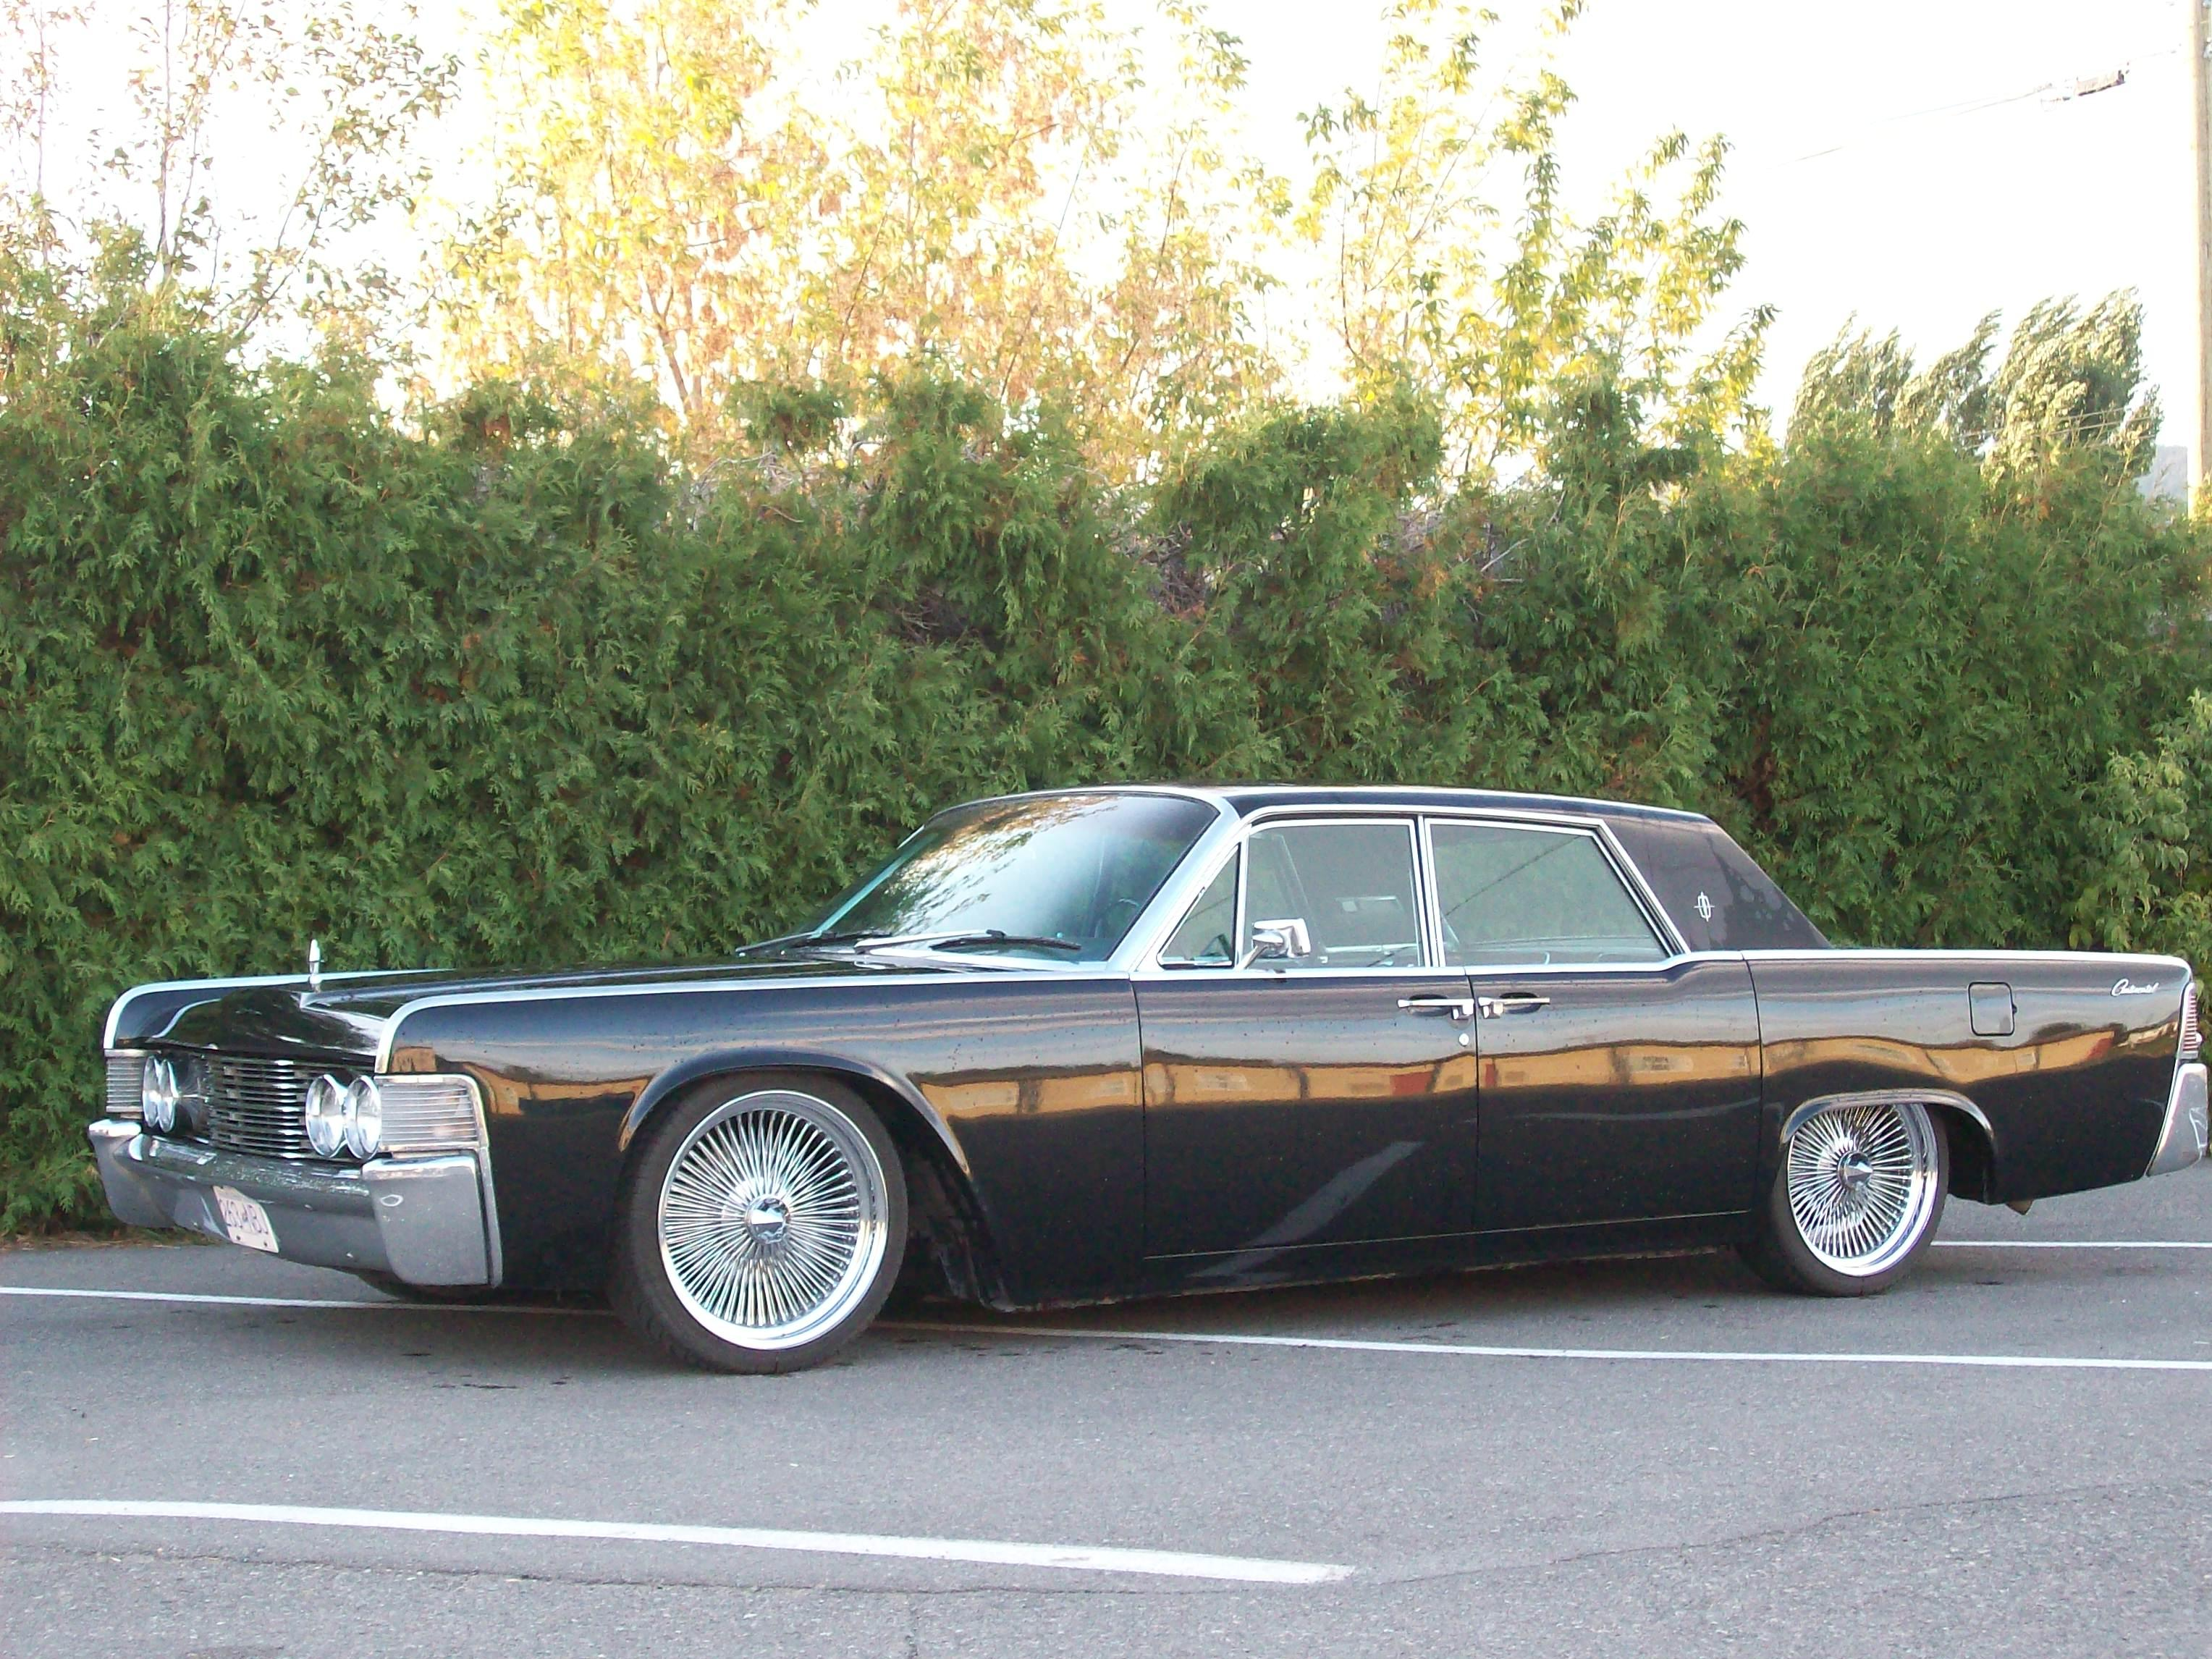 65 lincoln wiring diagram 65 printable wiring diagram database entourage 3965 lincoln continental qsv 11427 stamped prop 65 source